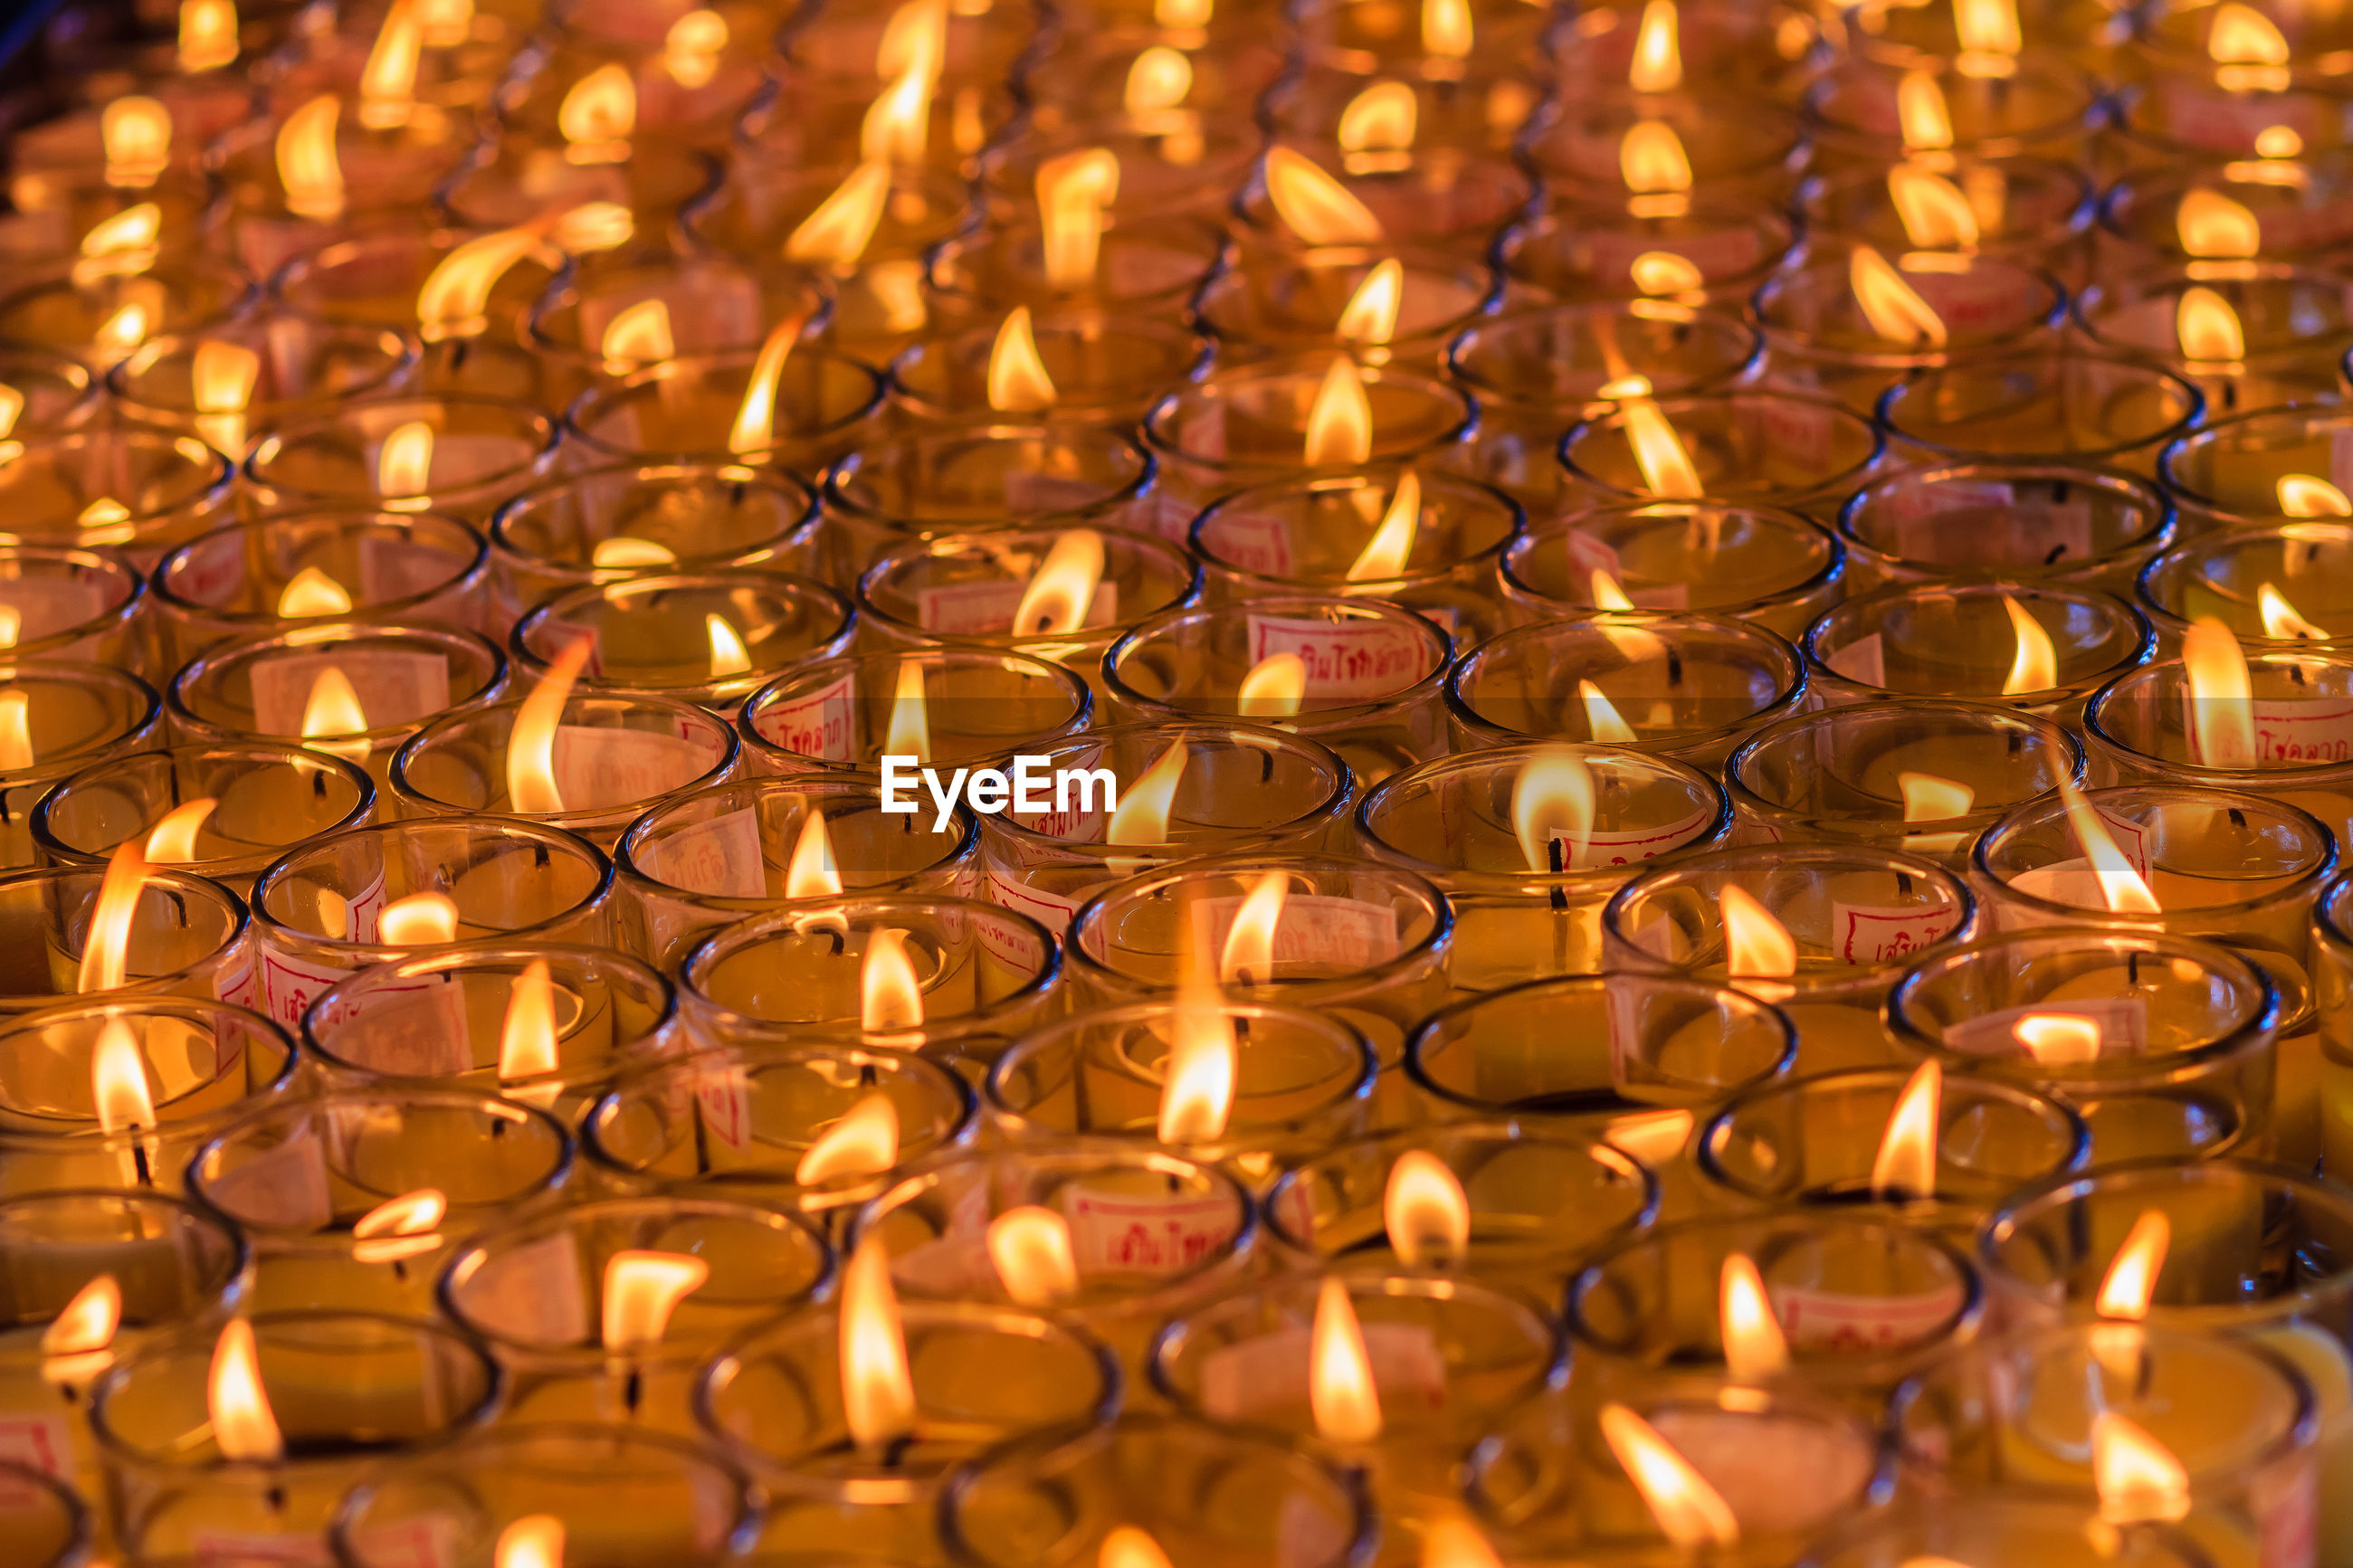 Close-up of illuminated tea lights